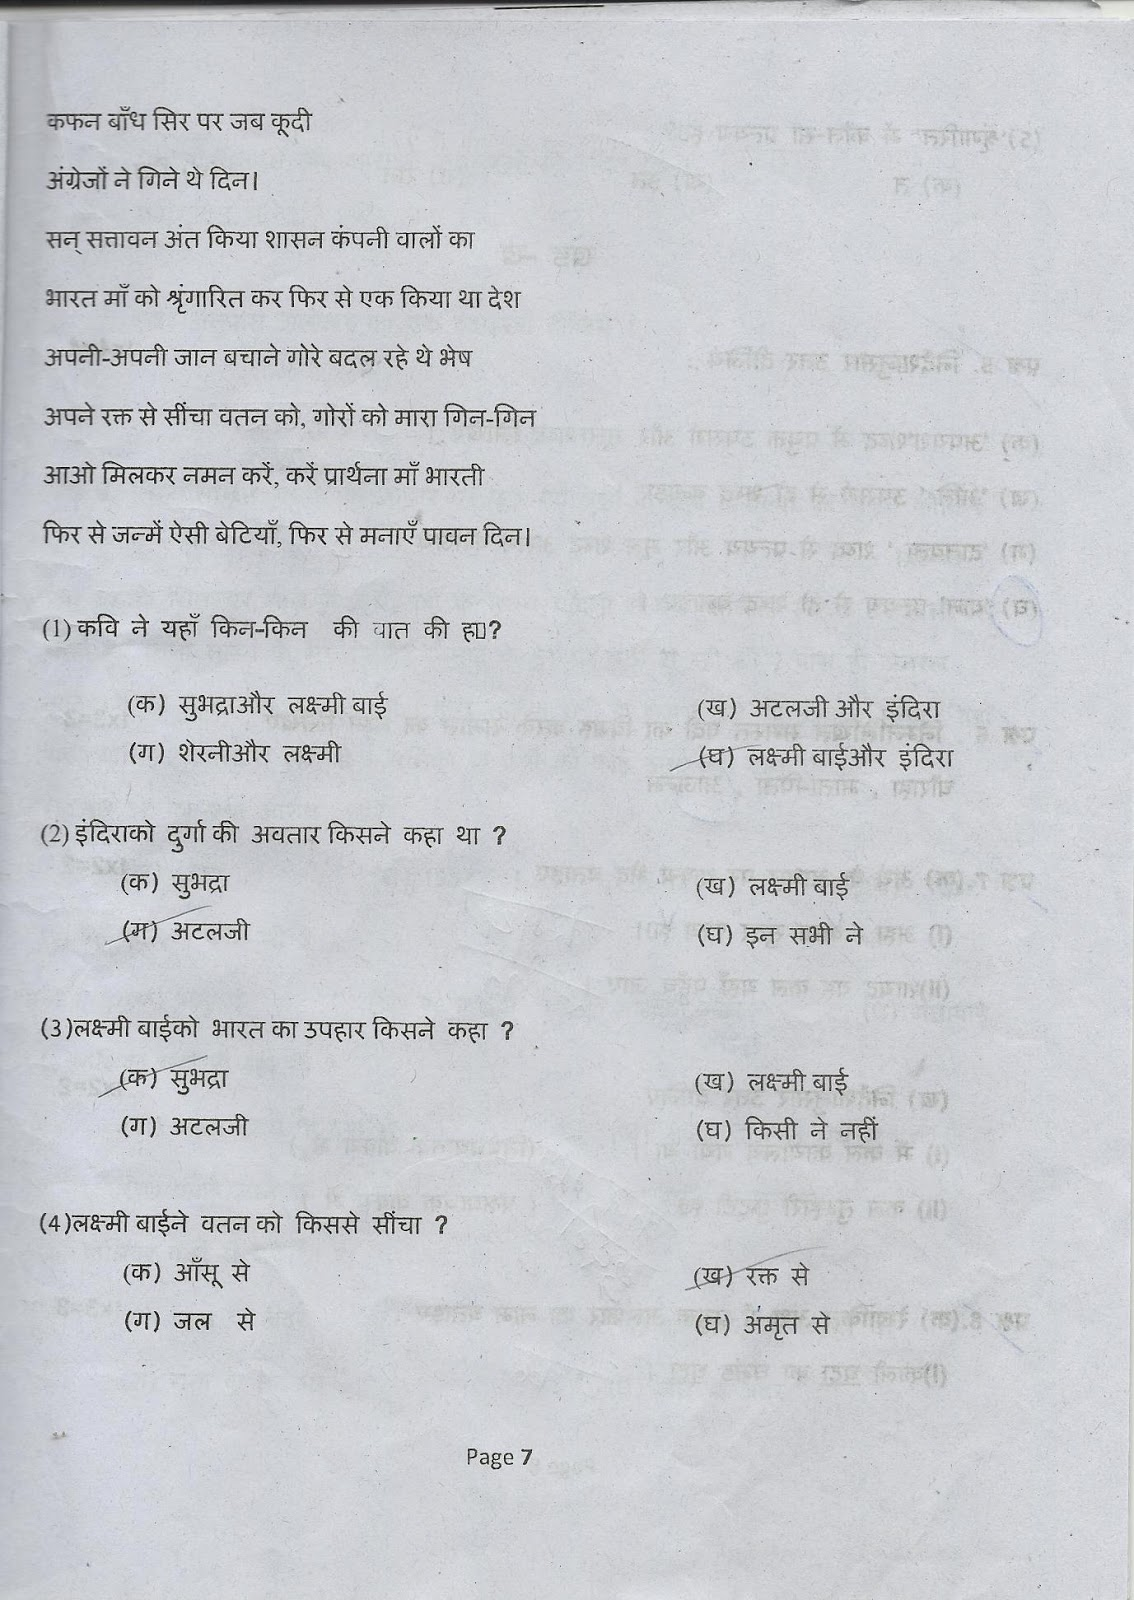 CBSE QUESTION PAPERS: Hindi Class 9 SA 2 REAL Question paper